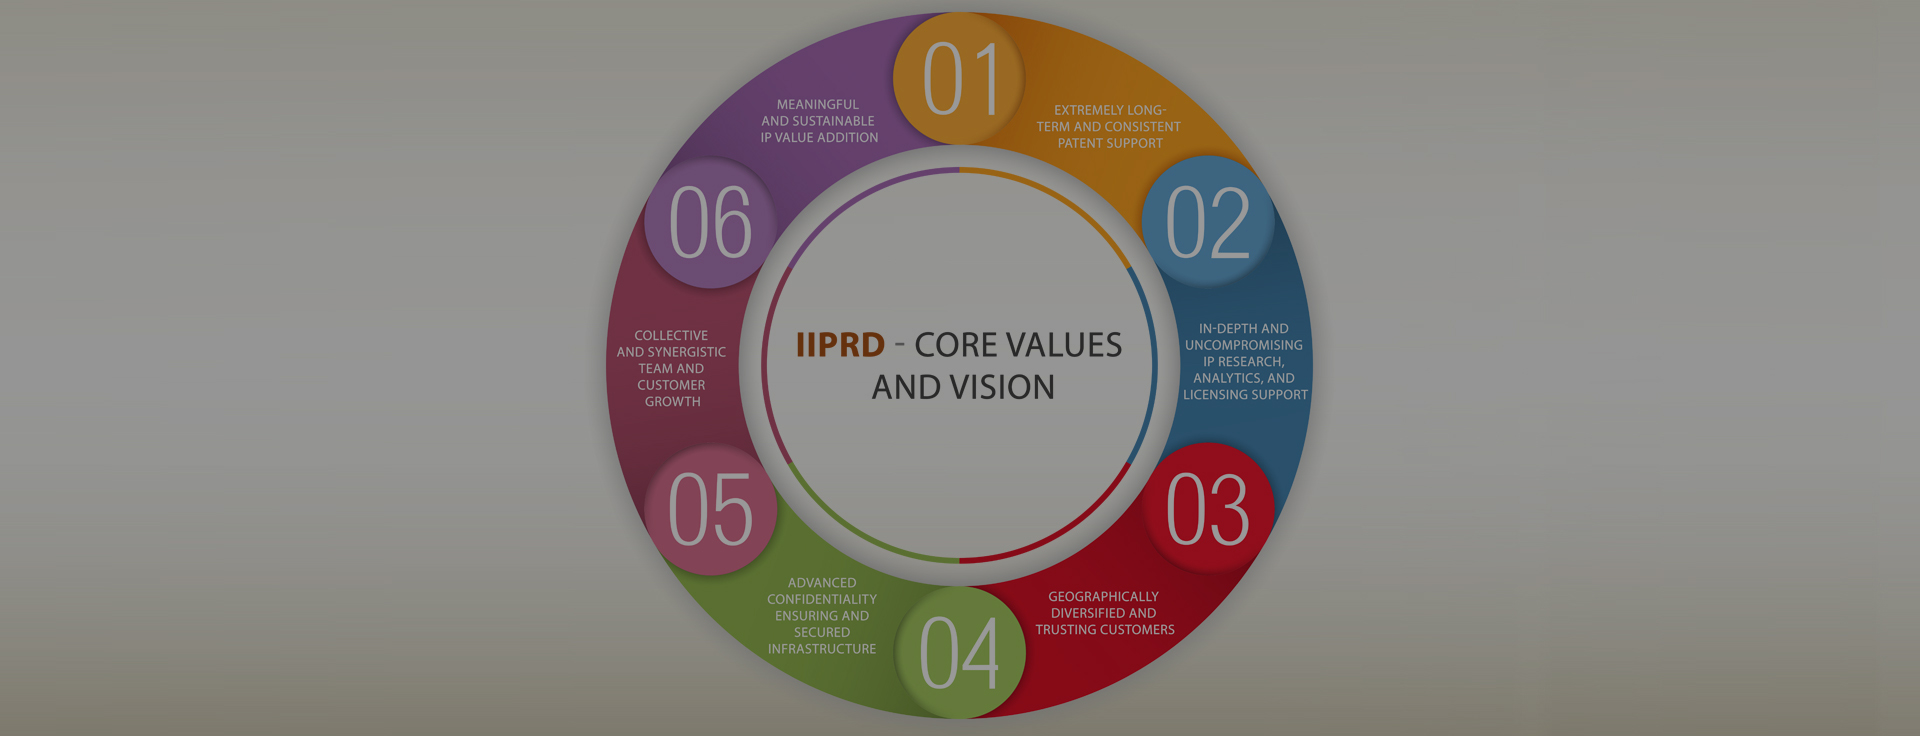 IIPRD Core Values and Vision